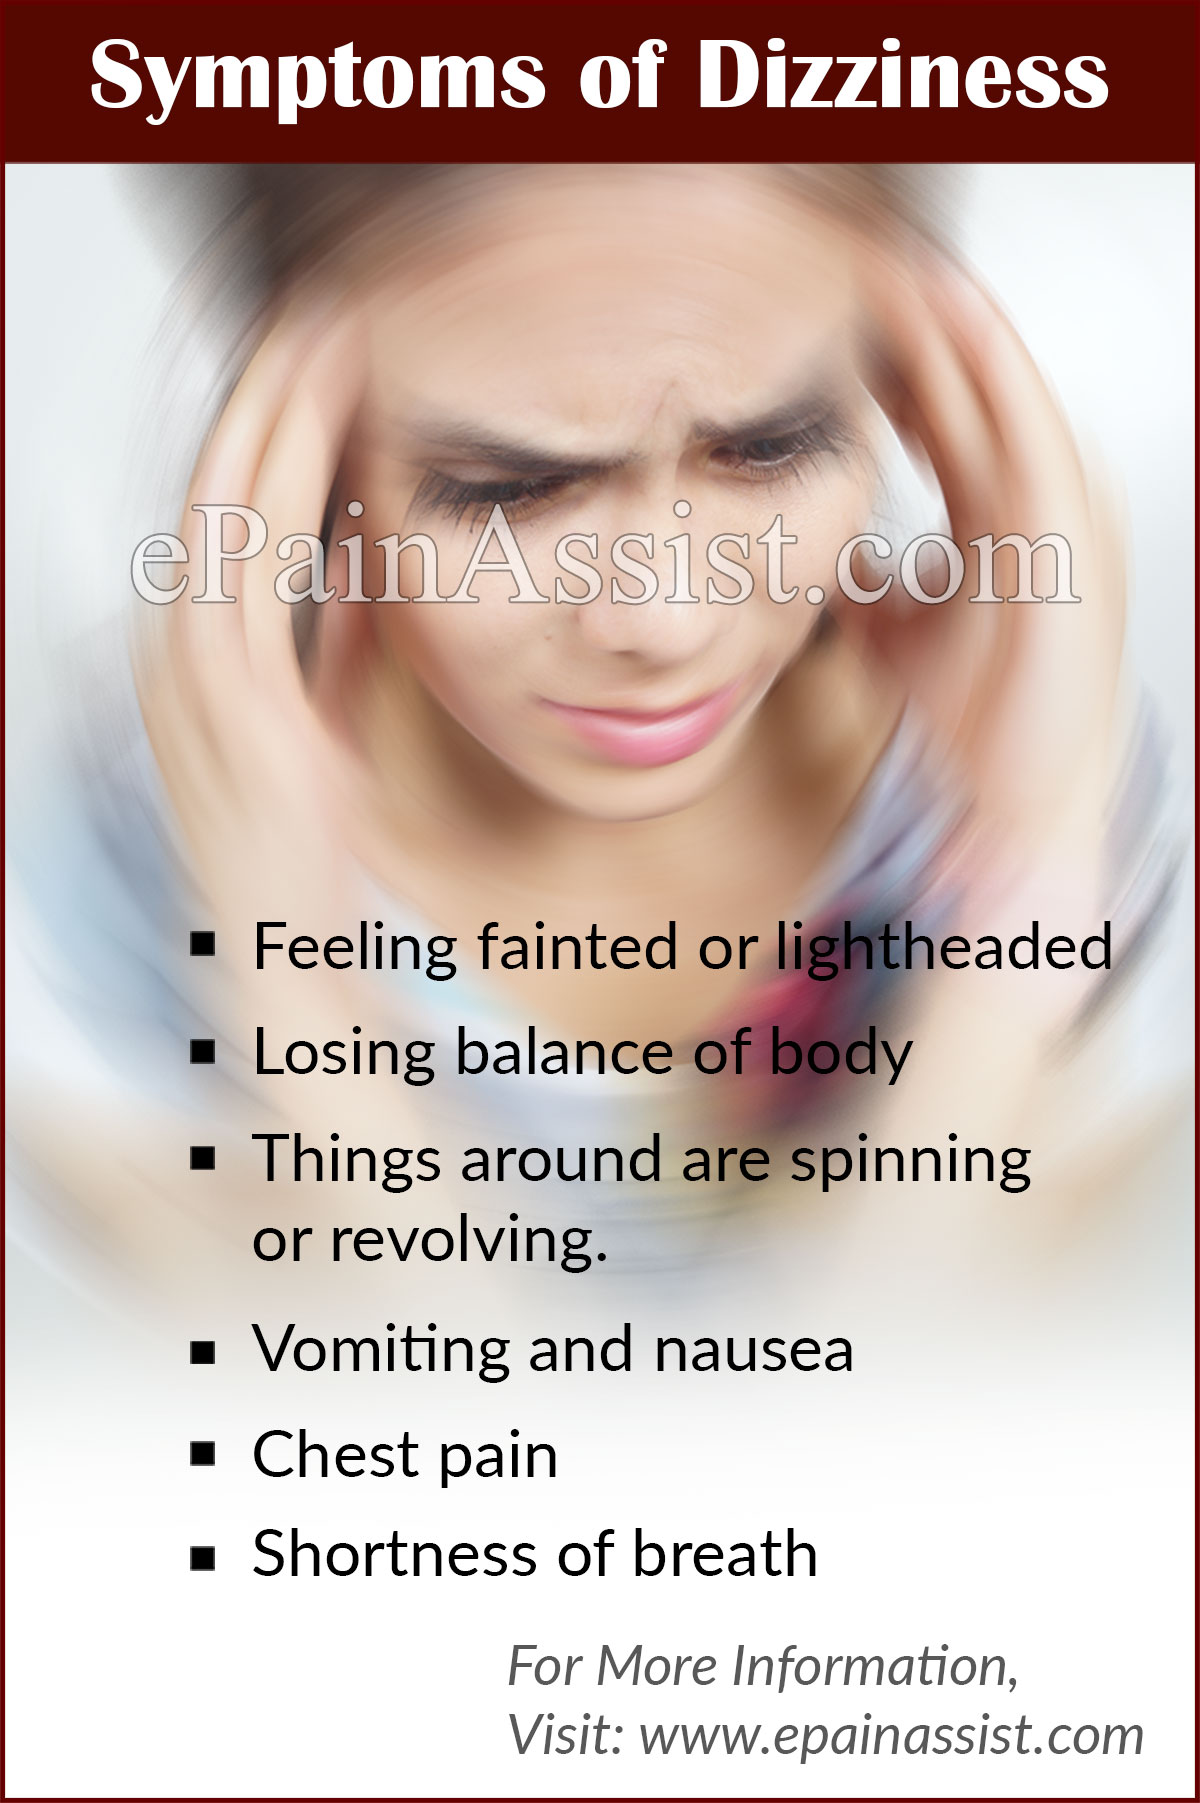 What to do When You Feel Dizzy?